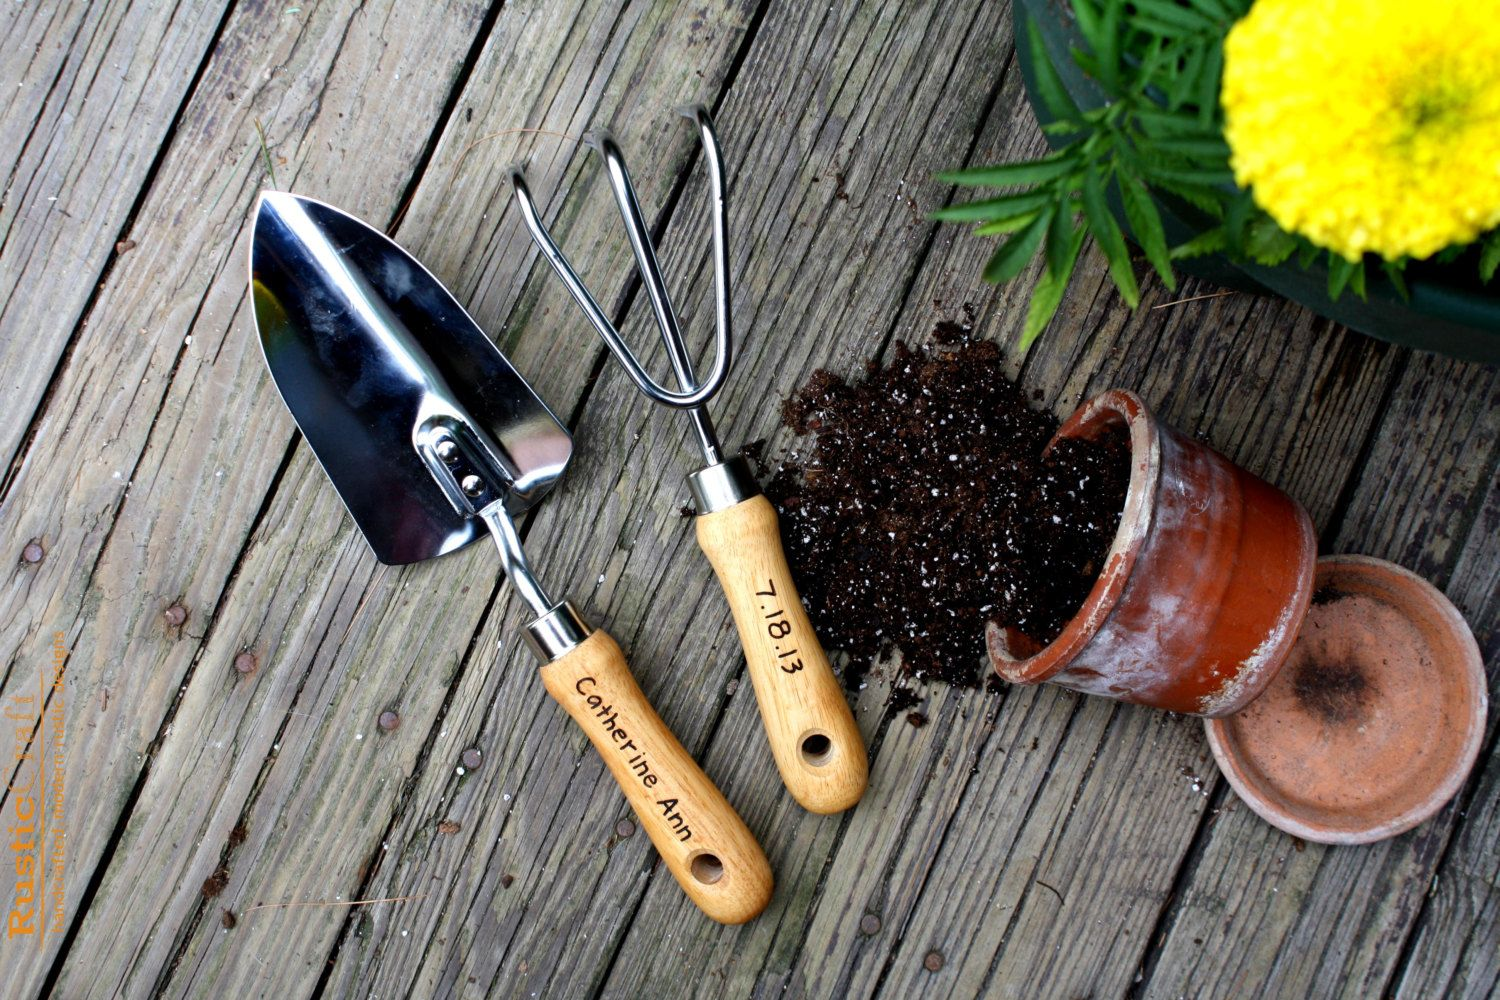 Don't forget the basic gardening tools as you plan your garden.